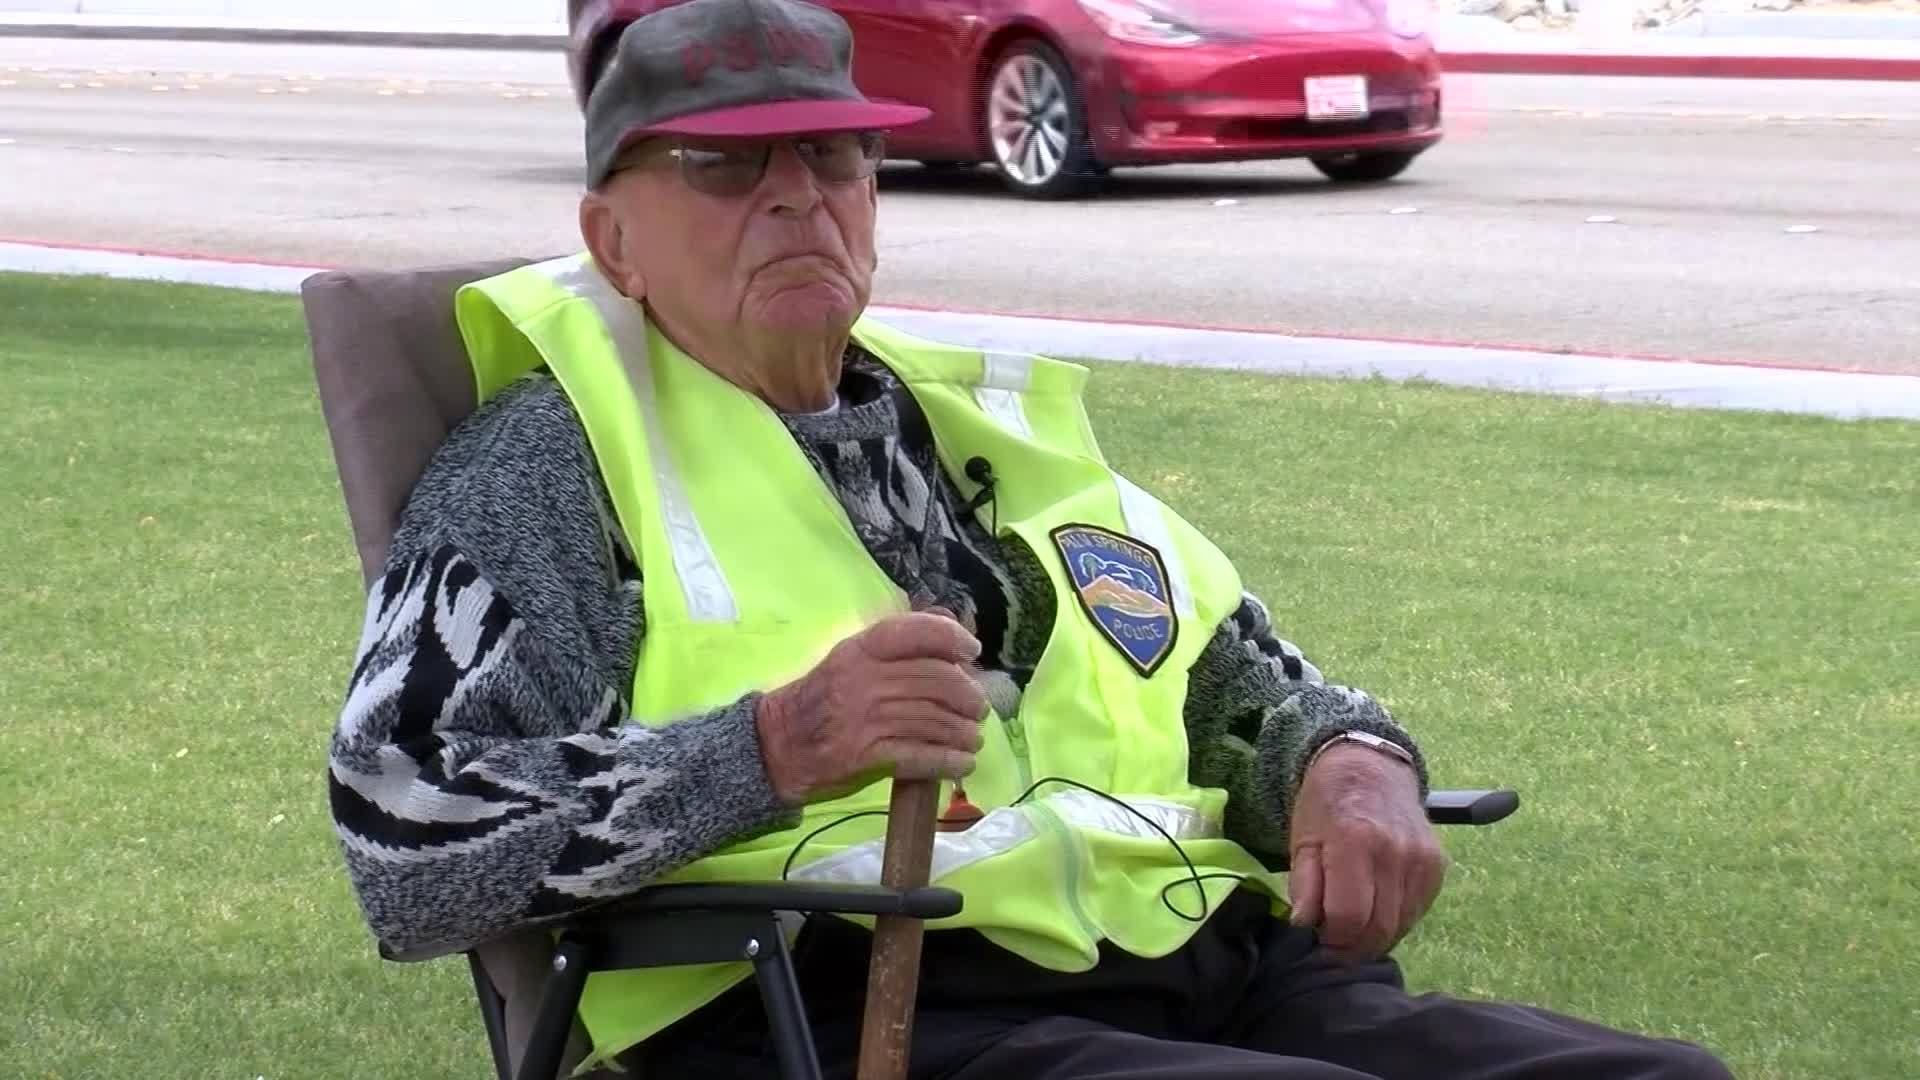 96-year-old still working as crossing guard